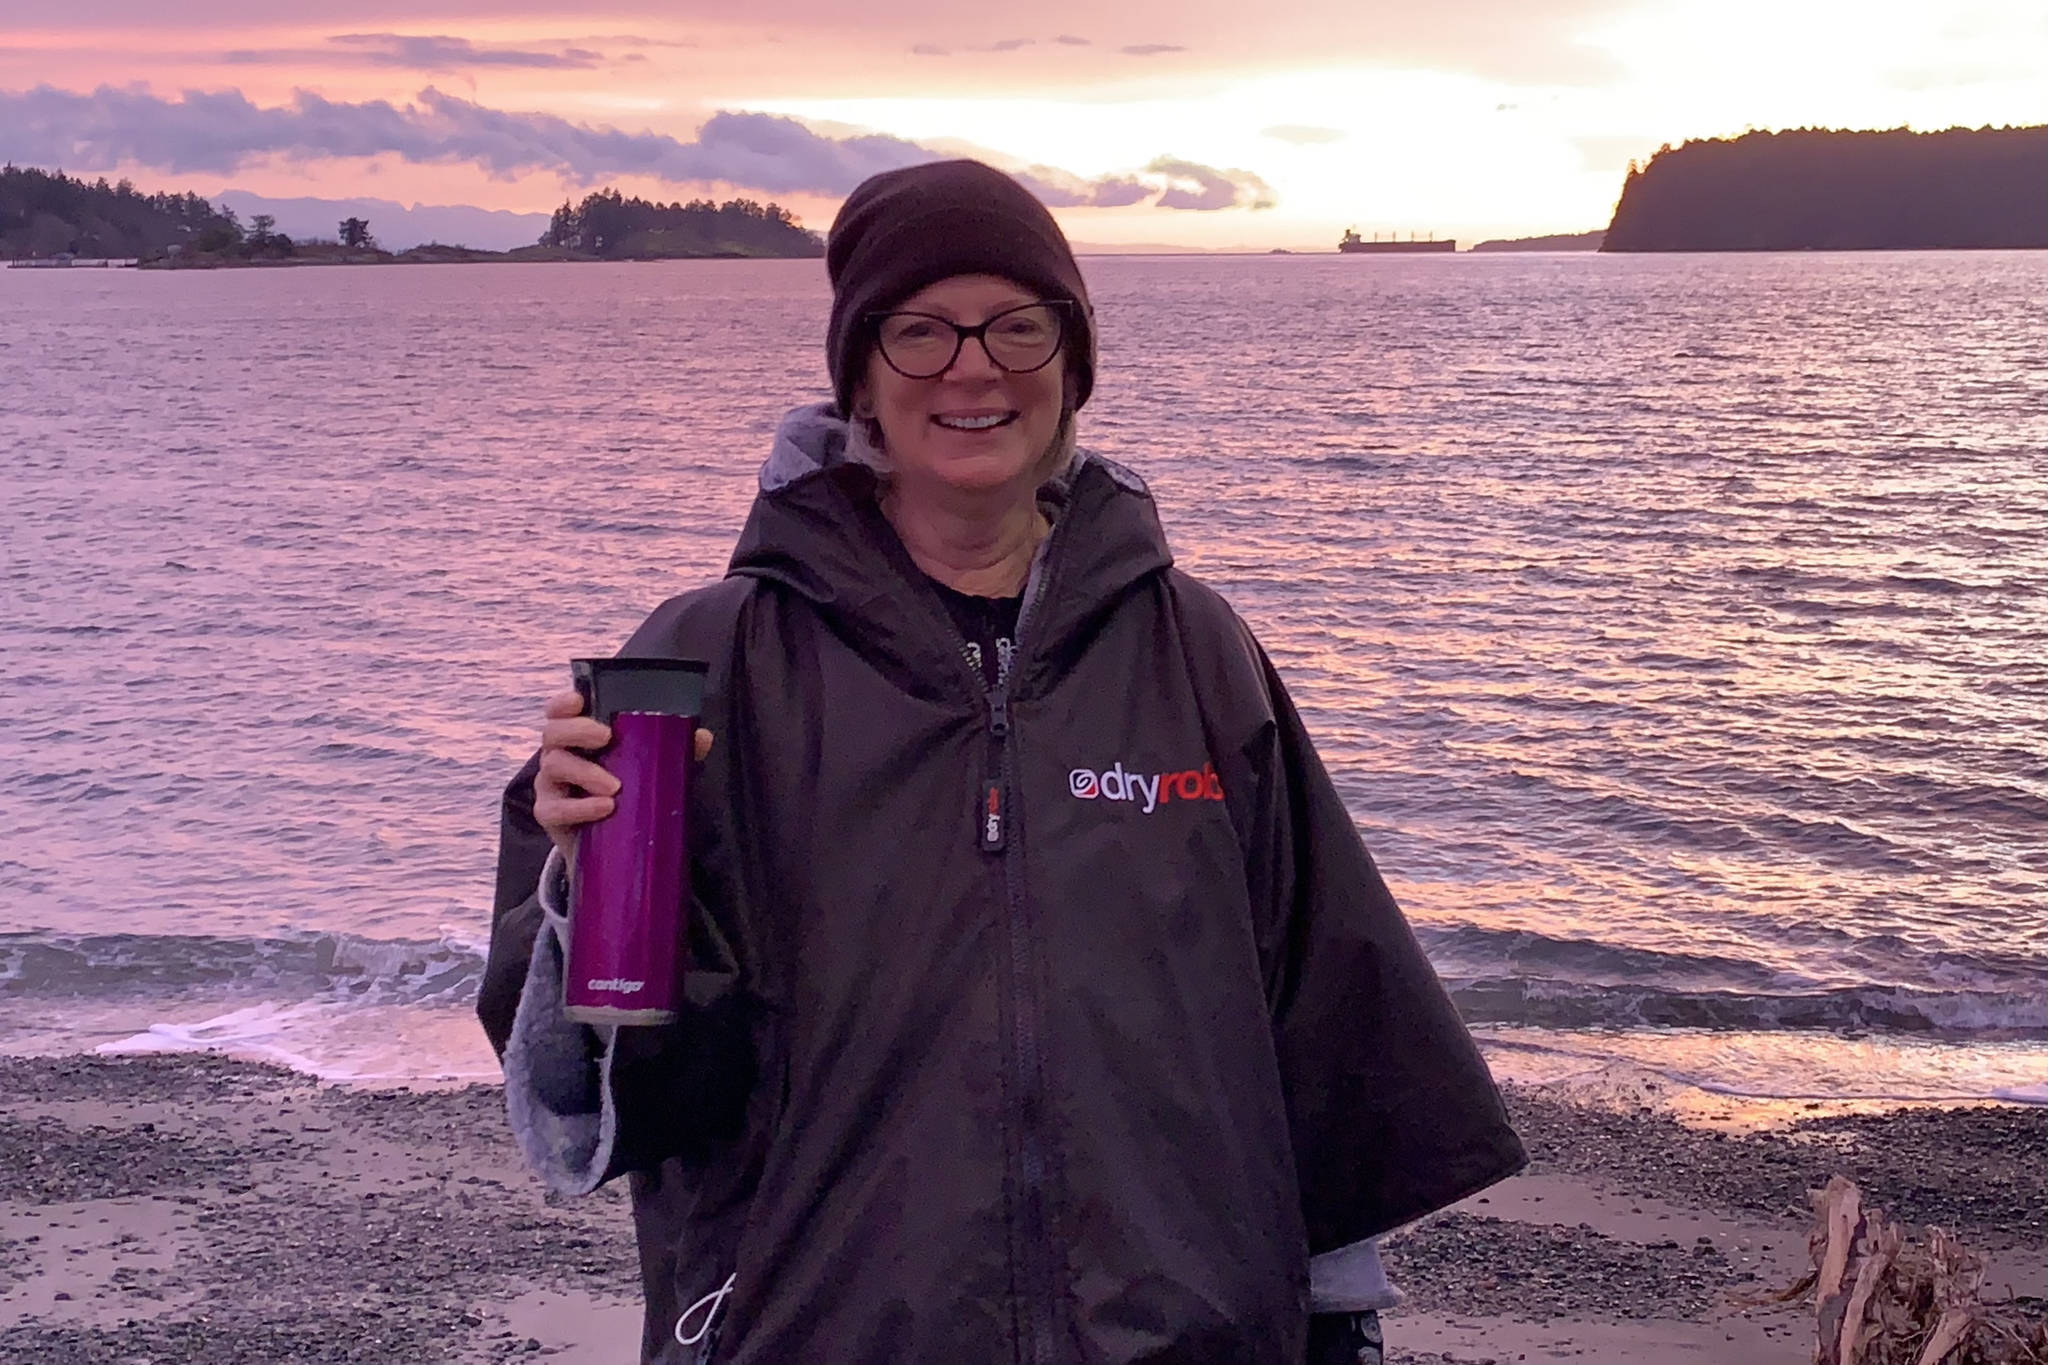 """Vicki McLeod will be presenting her pictures of """"wild swimming"""" at an online women's Zoom event, YakFest, on April 5. (SUBMITTED PHOTO)"""